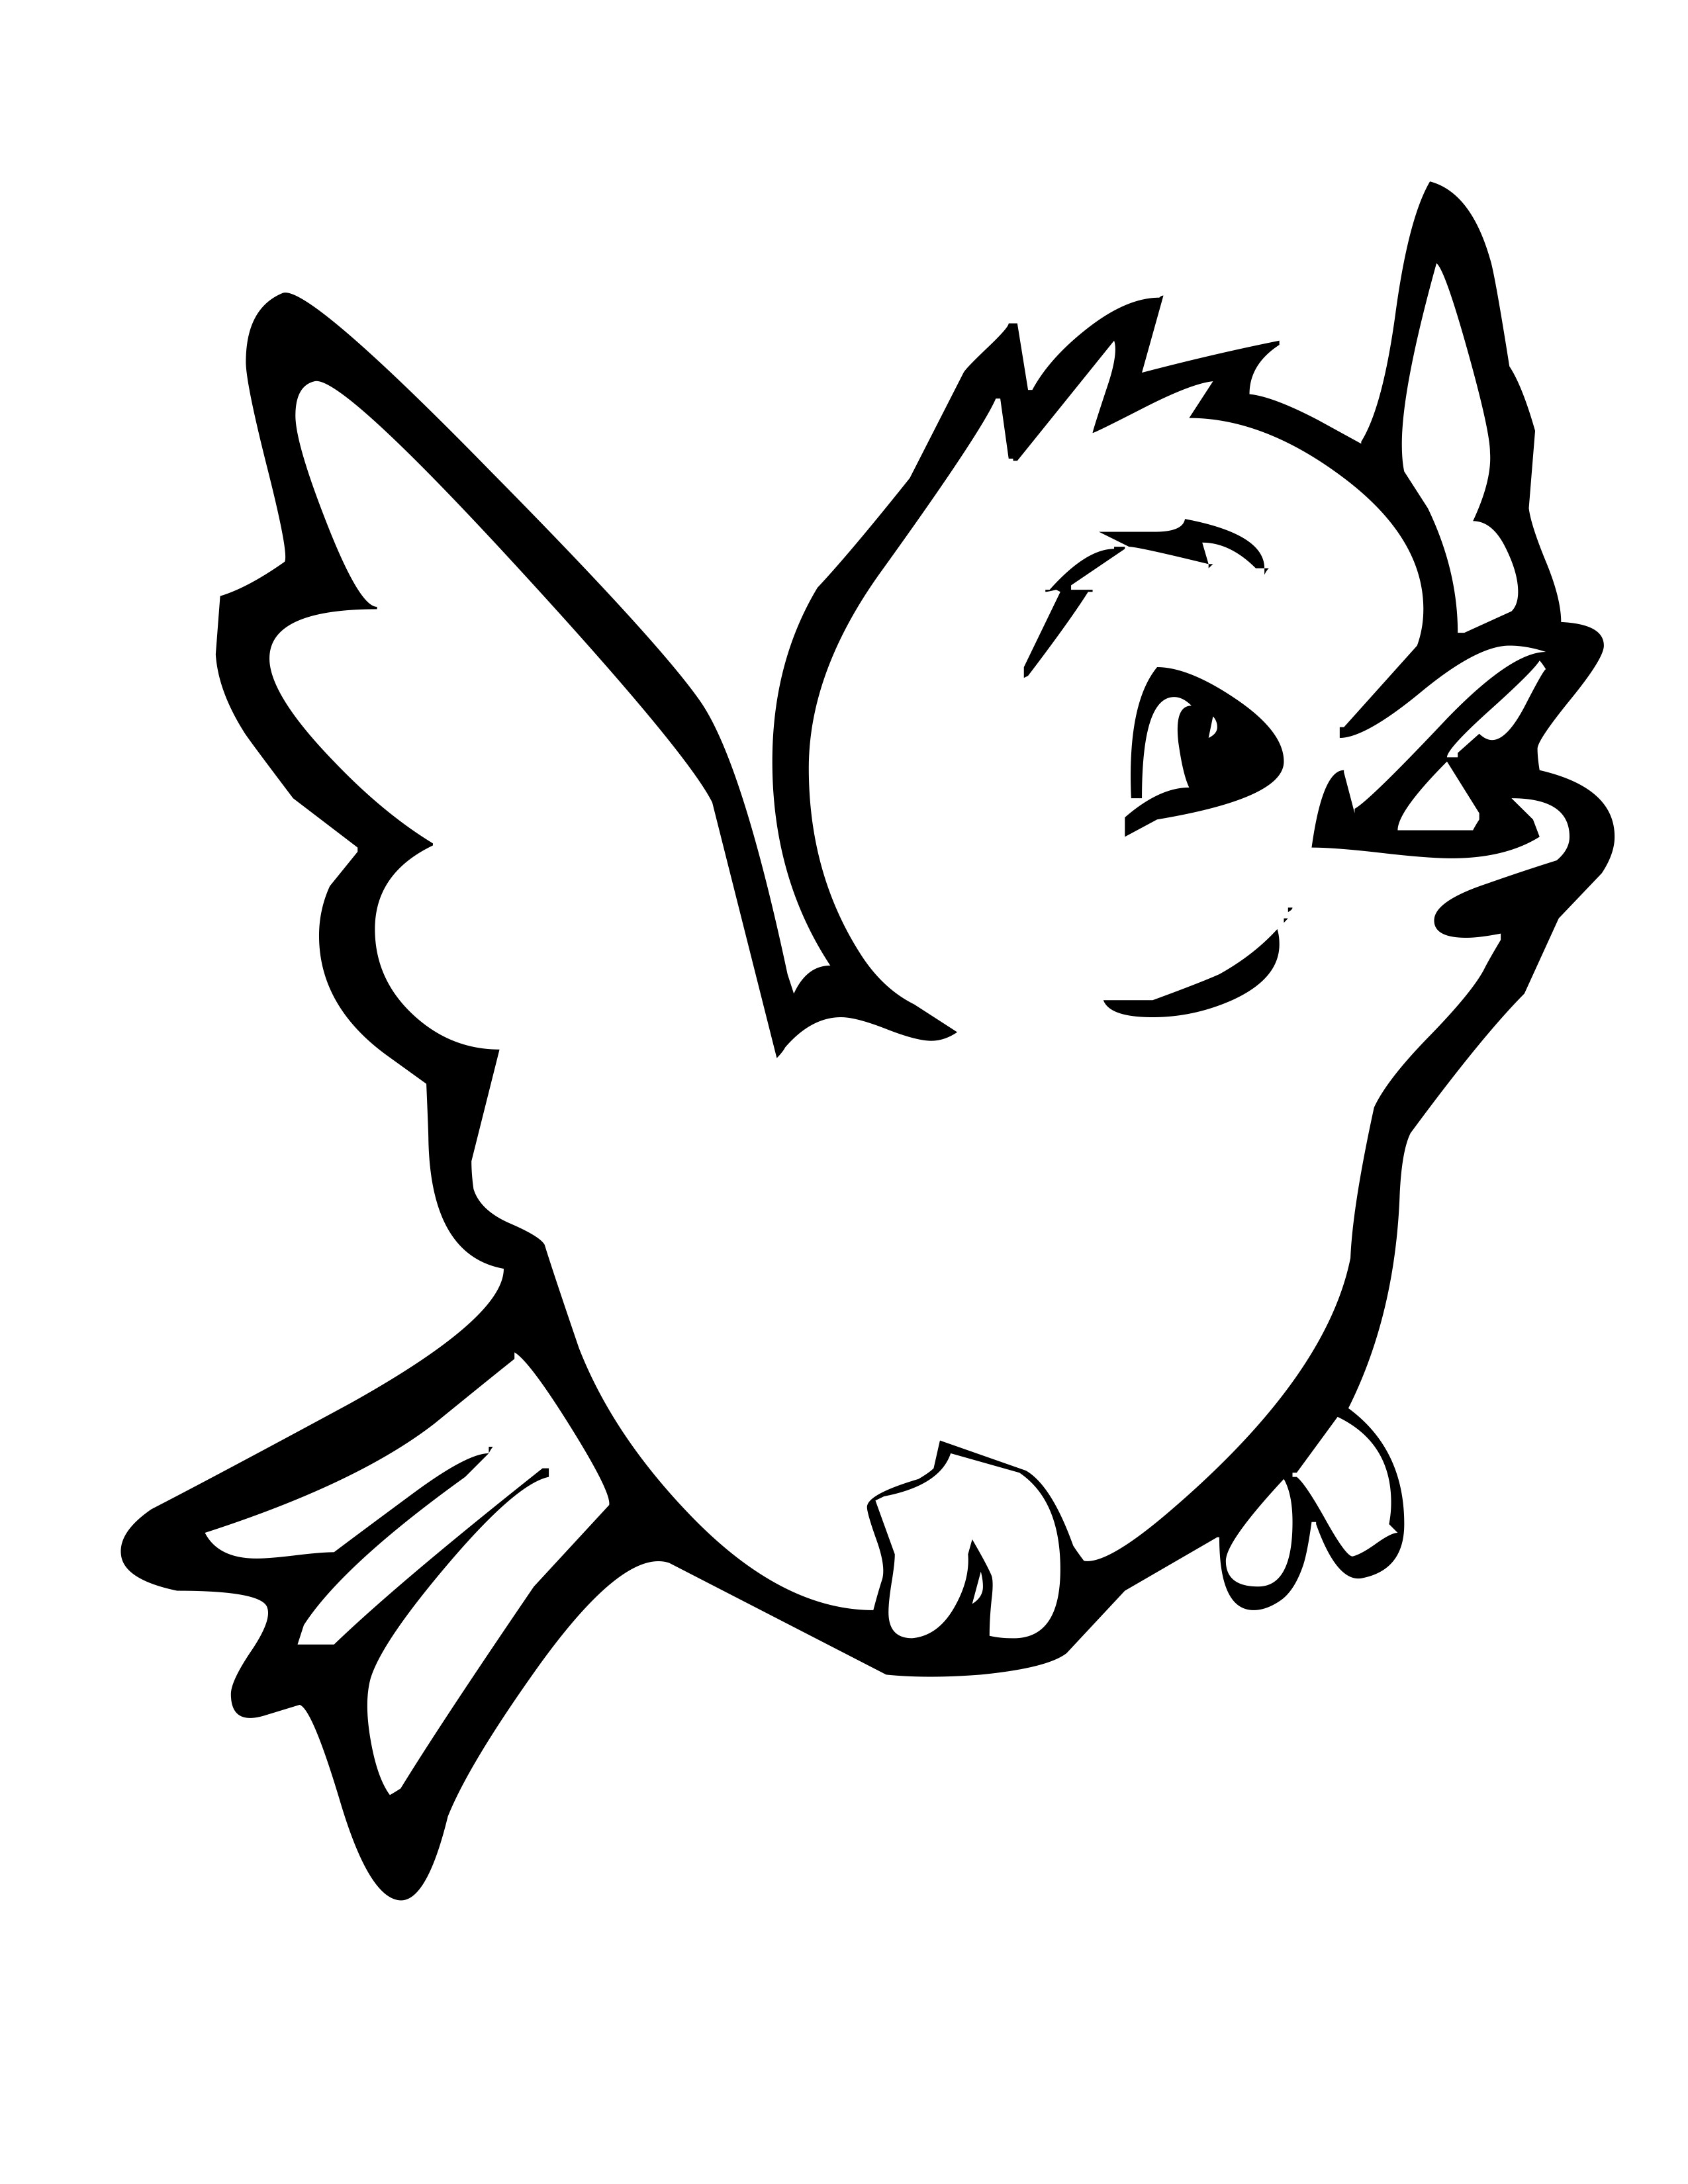 coloring birds for kids bird coloring pages kids for birds coloring